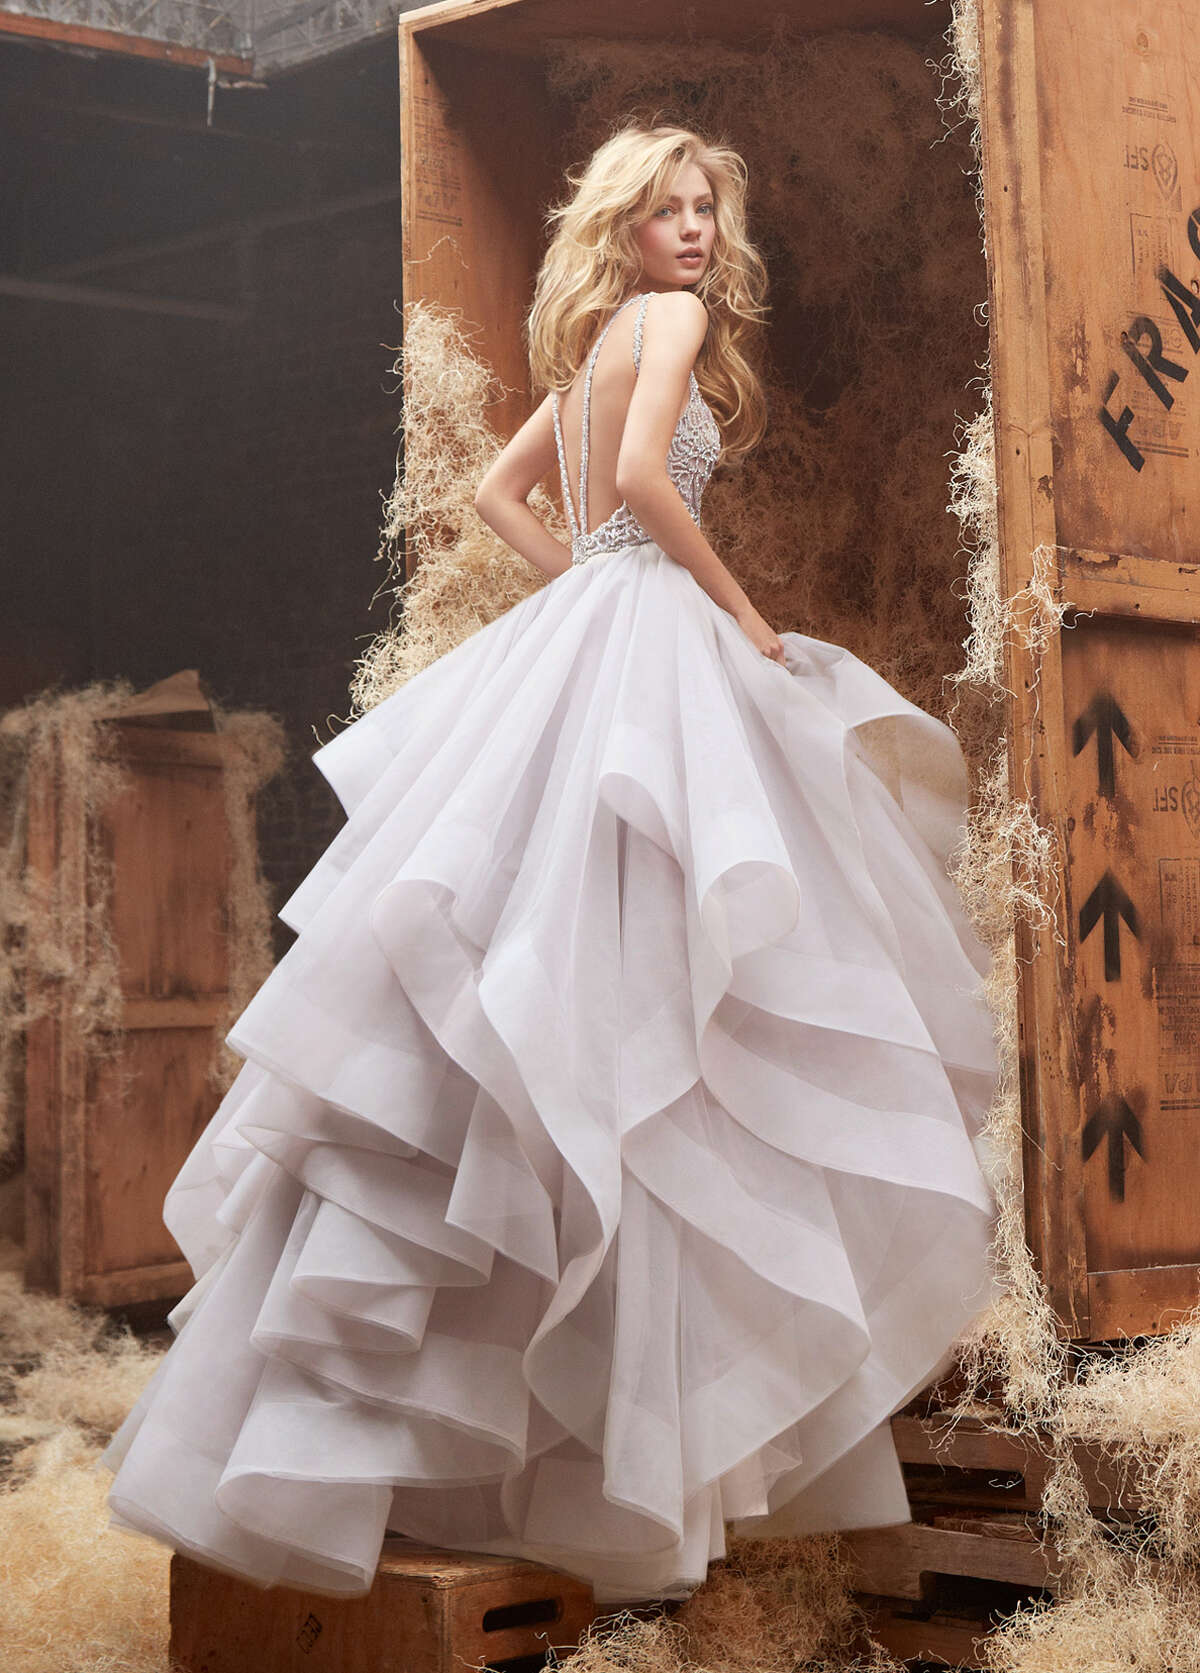 """The Hayley Paige """"Dori"""" bridal gown, $4,615, from Now & Forever Bridal Boutique on Kirby, has the drama that some brides want for their big day."""